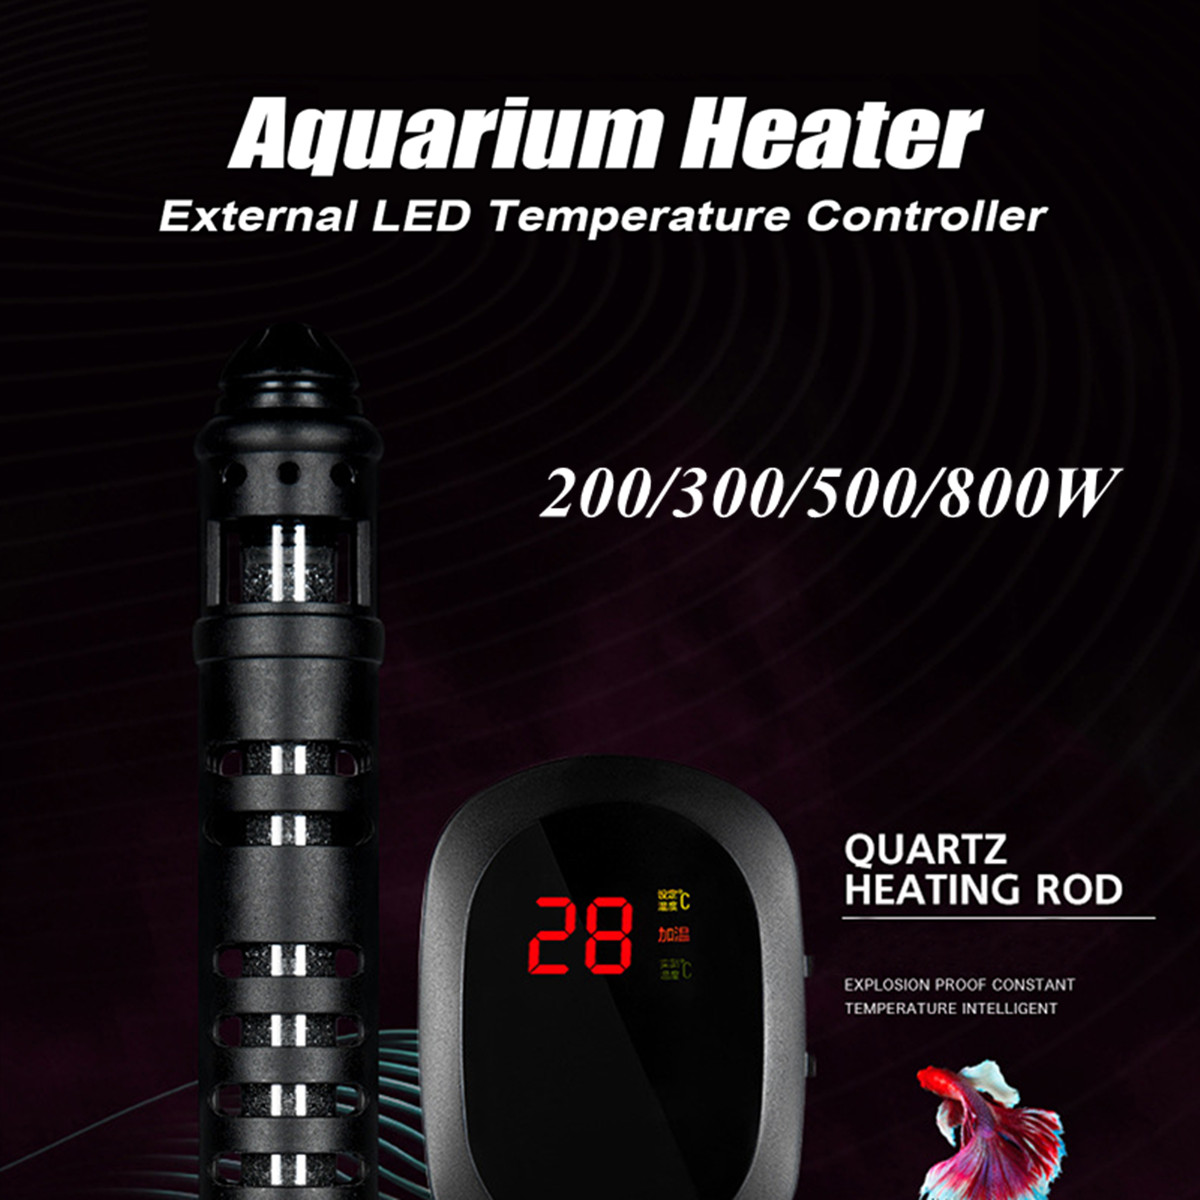 LED Aquarium Heater Fish Tank Water Submersible Adjustable Thermostat Heating Rods Aquatic Pet Cage Temperature Control 100-800WLED Aquarium Heater Fish Tank Water Submersible Adjustable Thermostat Heating Rods Aquatic Pet Cage Temperature Control 100-800W